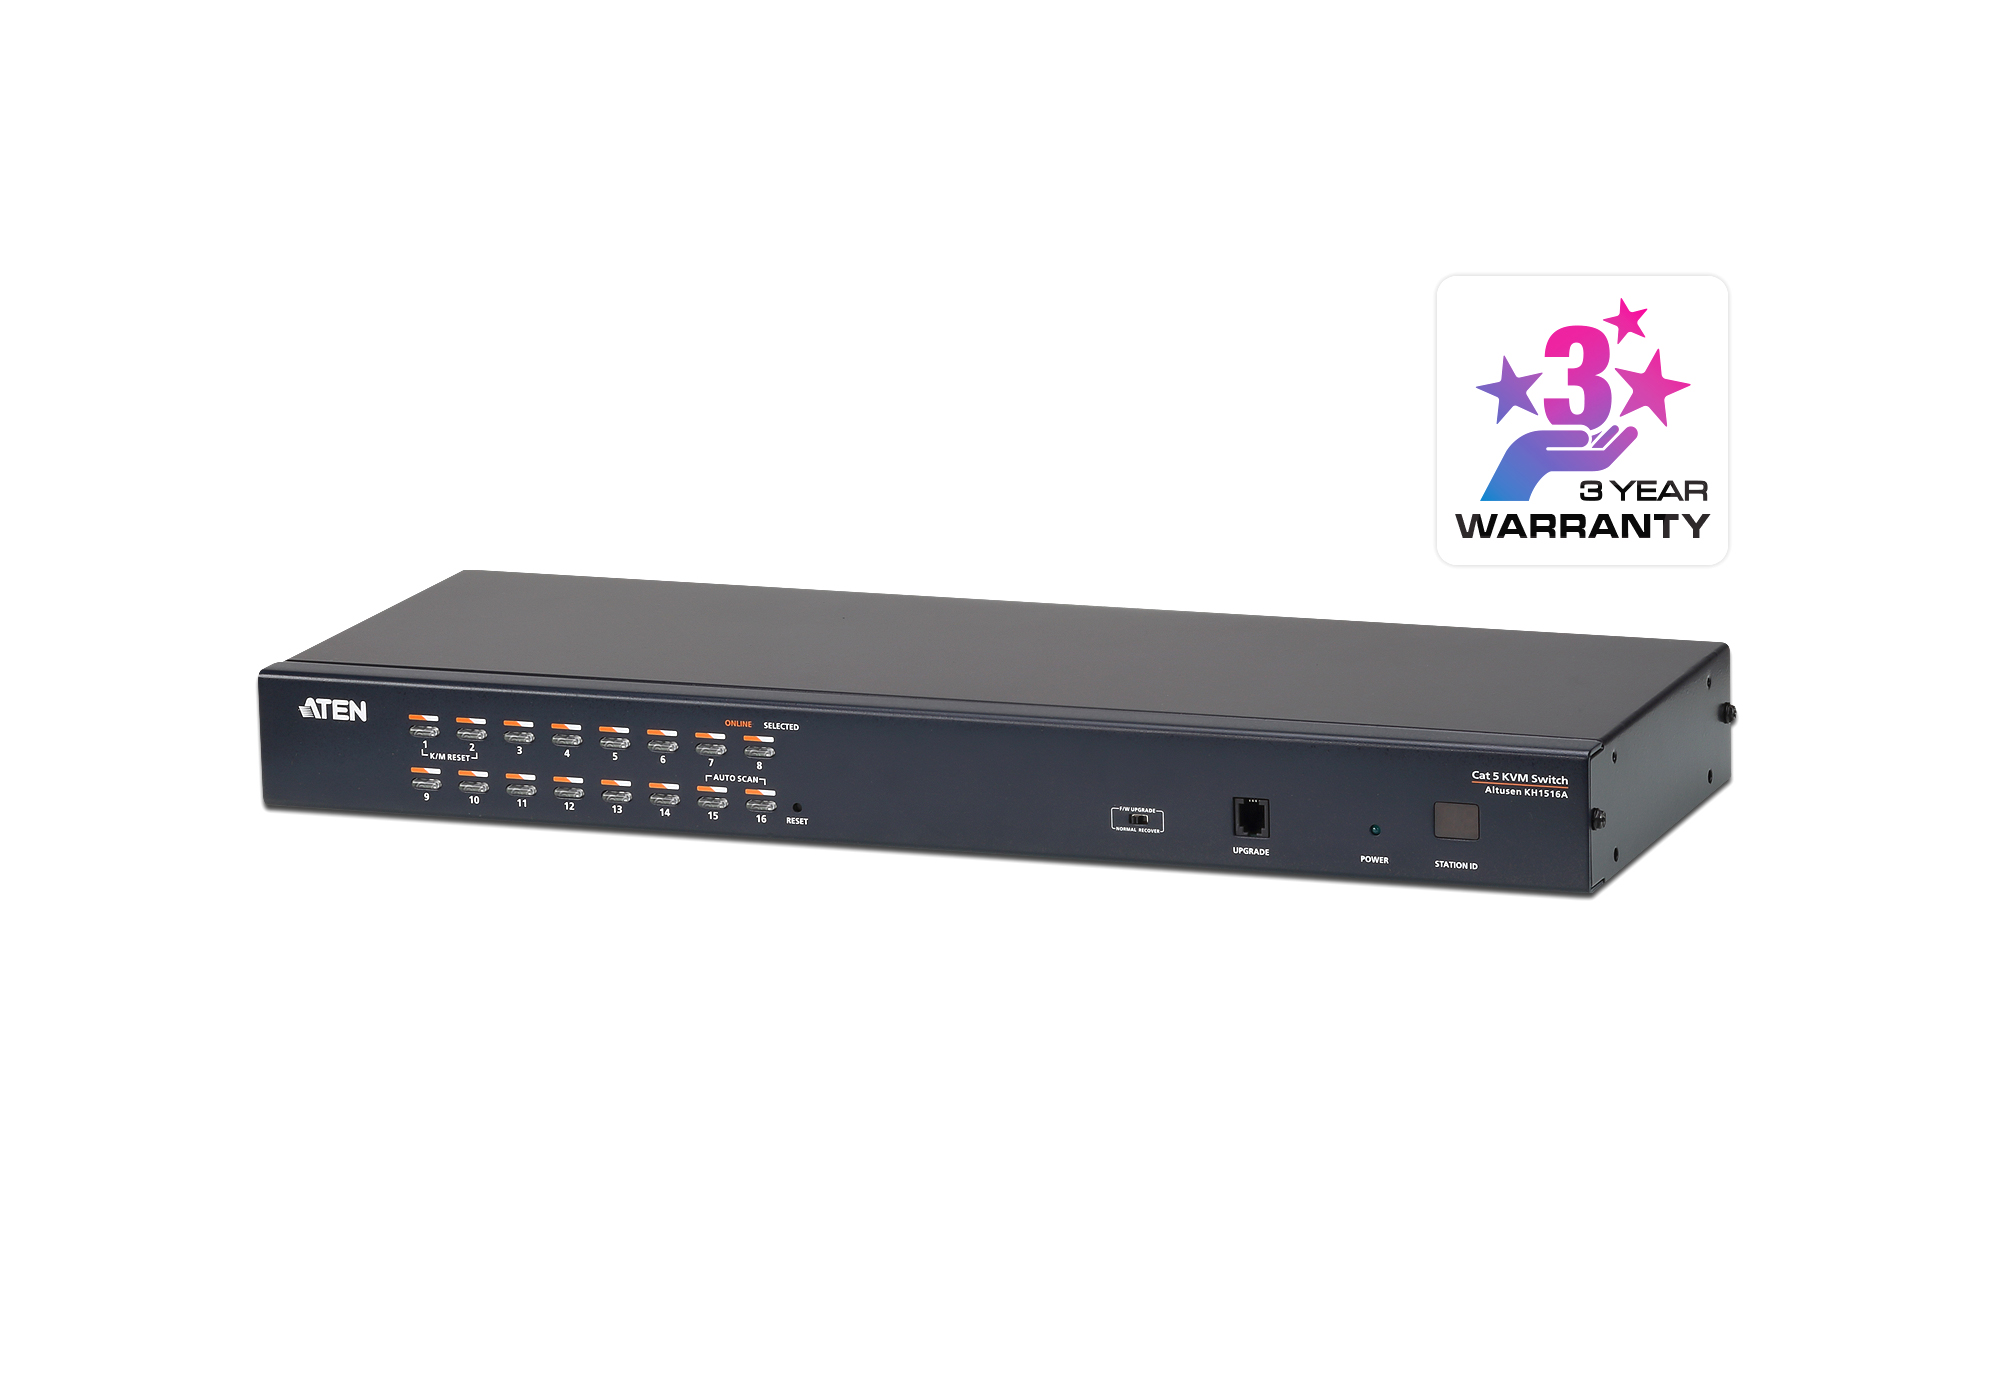 Commutateur KVM (DisplayPort, HDMI, DVI, VGA) multi-interface Cat 5 à 16 ports